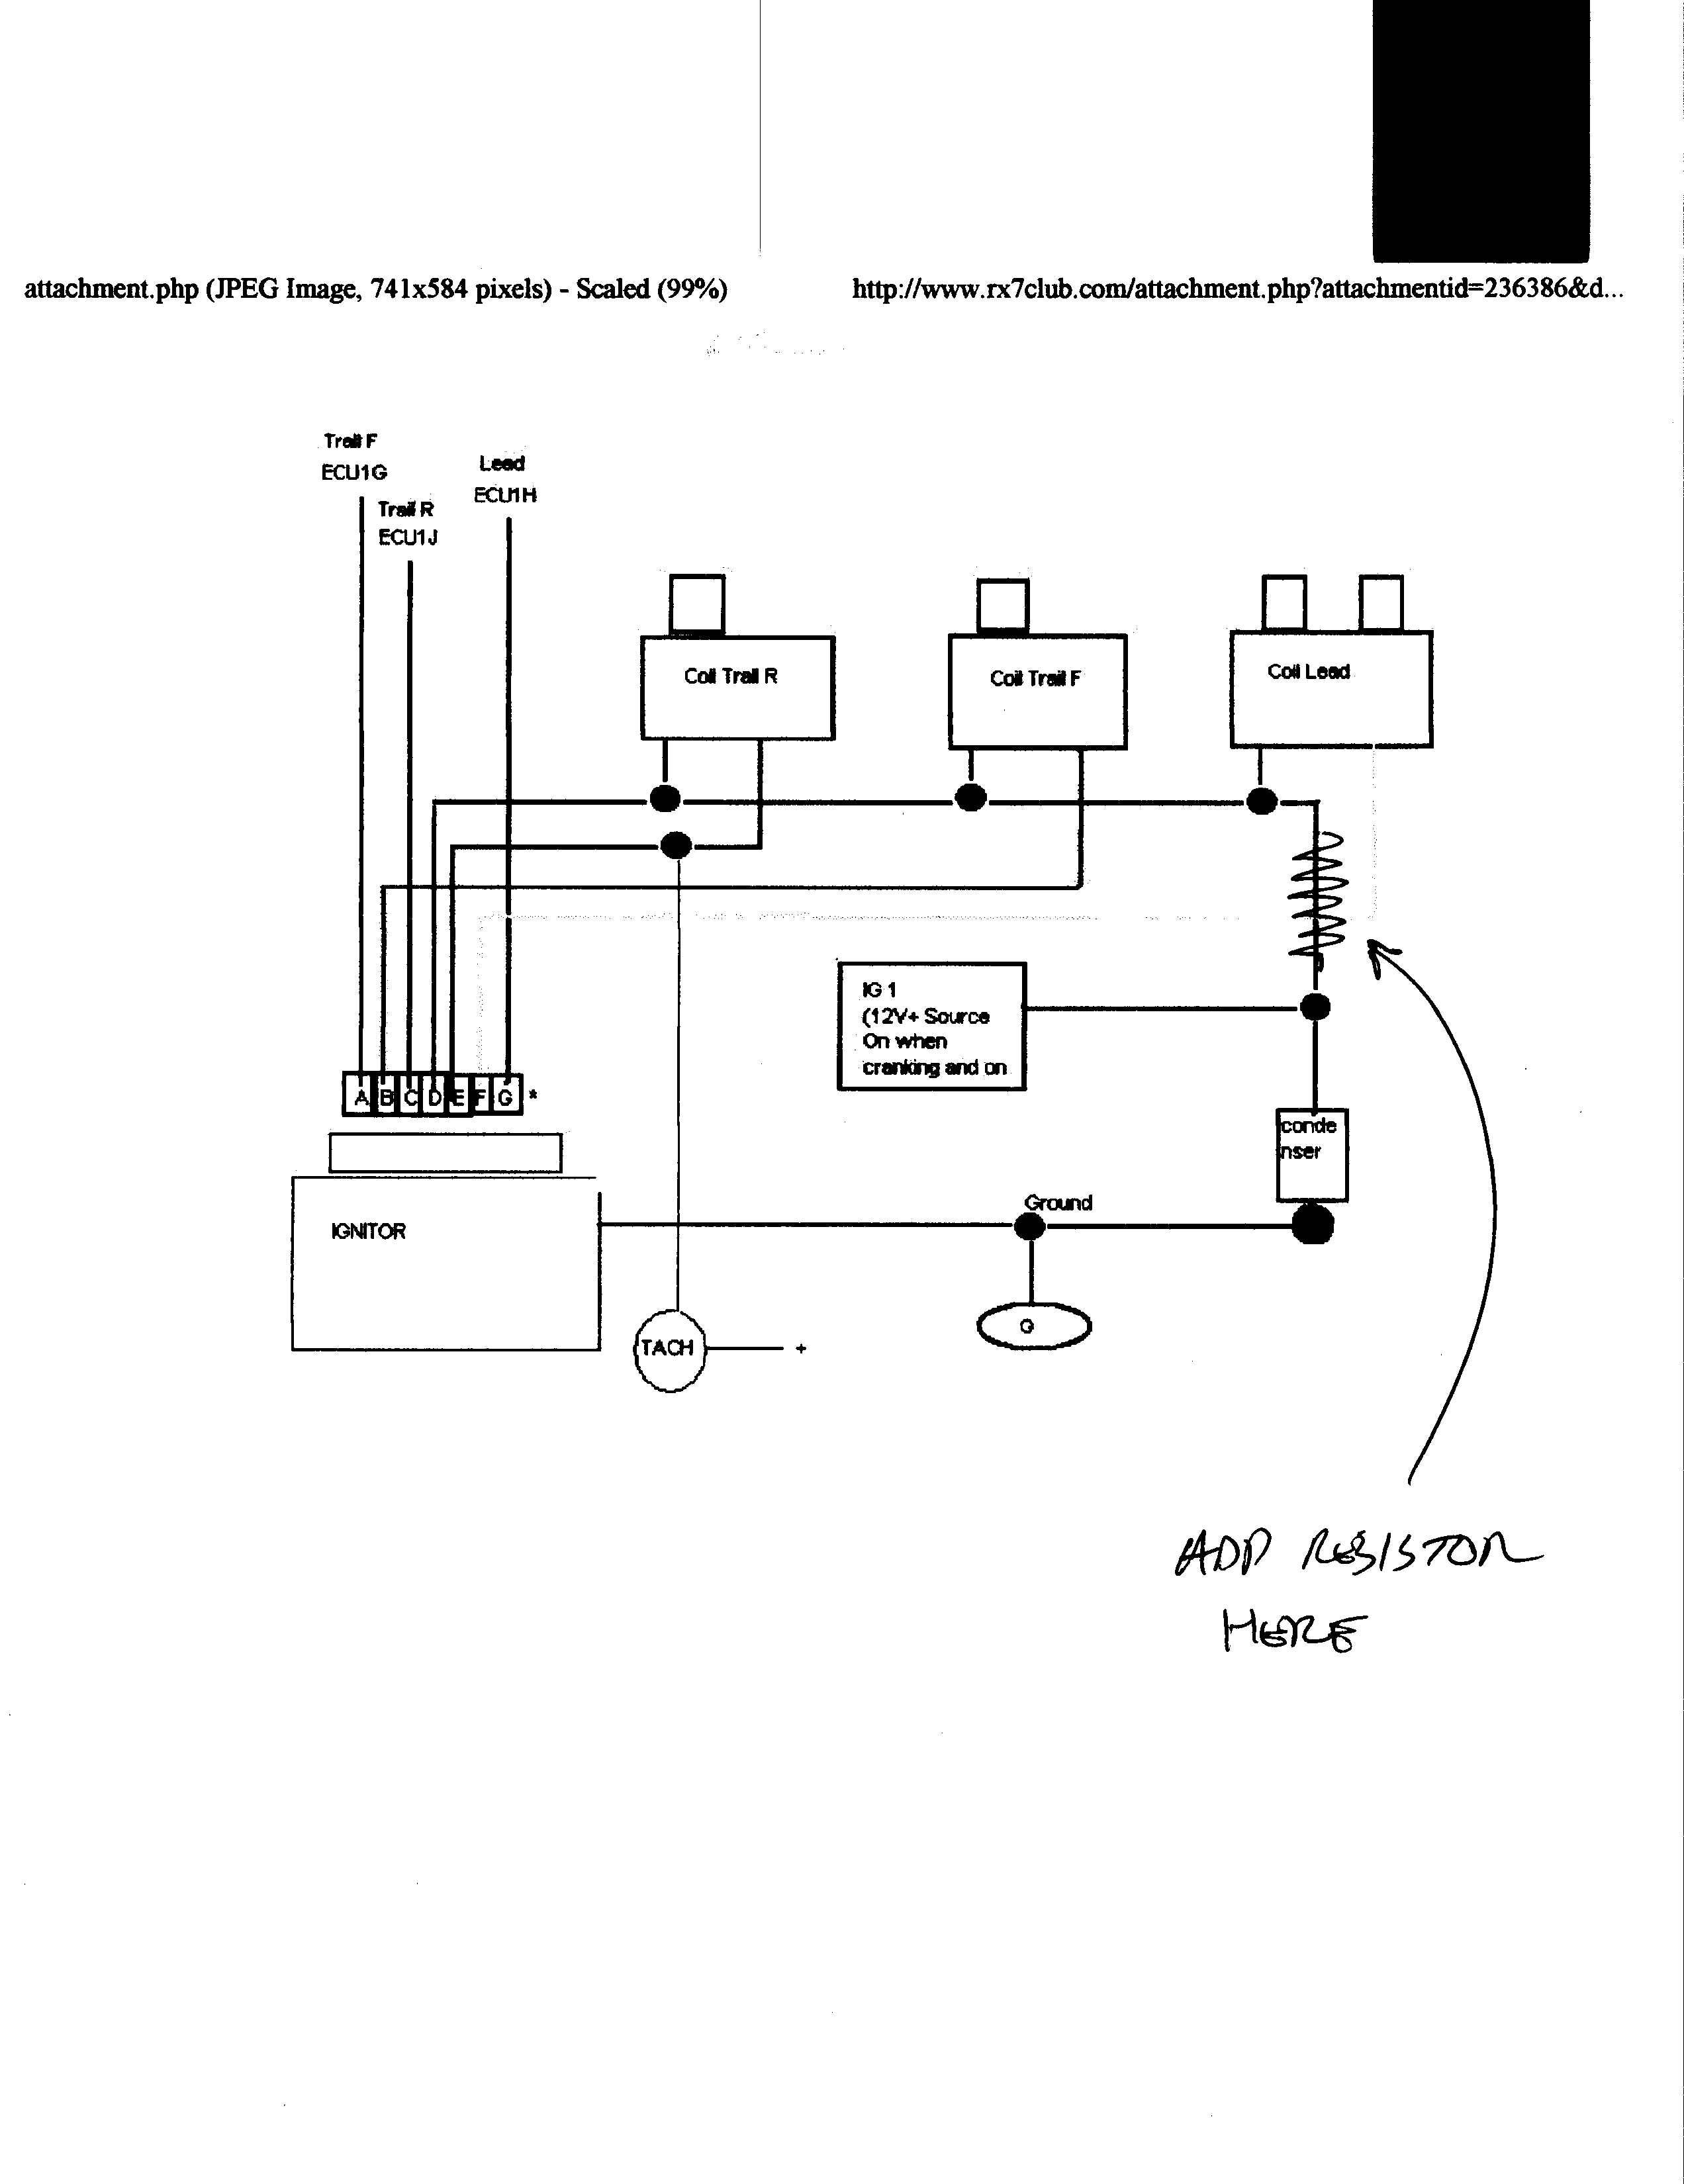 Fd Ignition, Coil Wiring Help Please - Rx7Club - Mazda Rx7 Forum - Ignition Coil Wiring Diagram